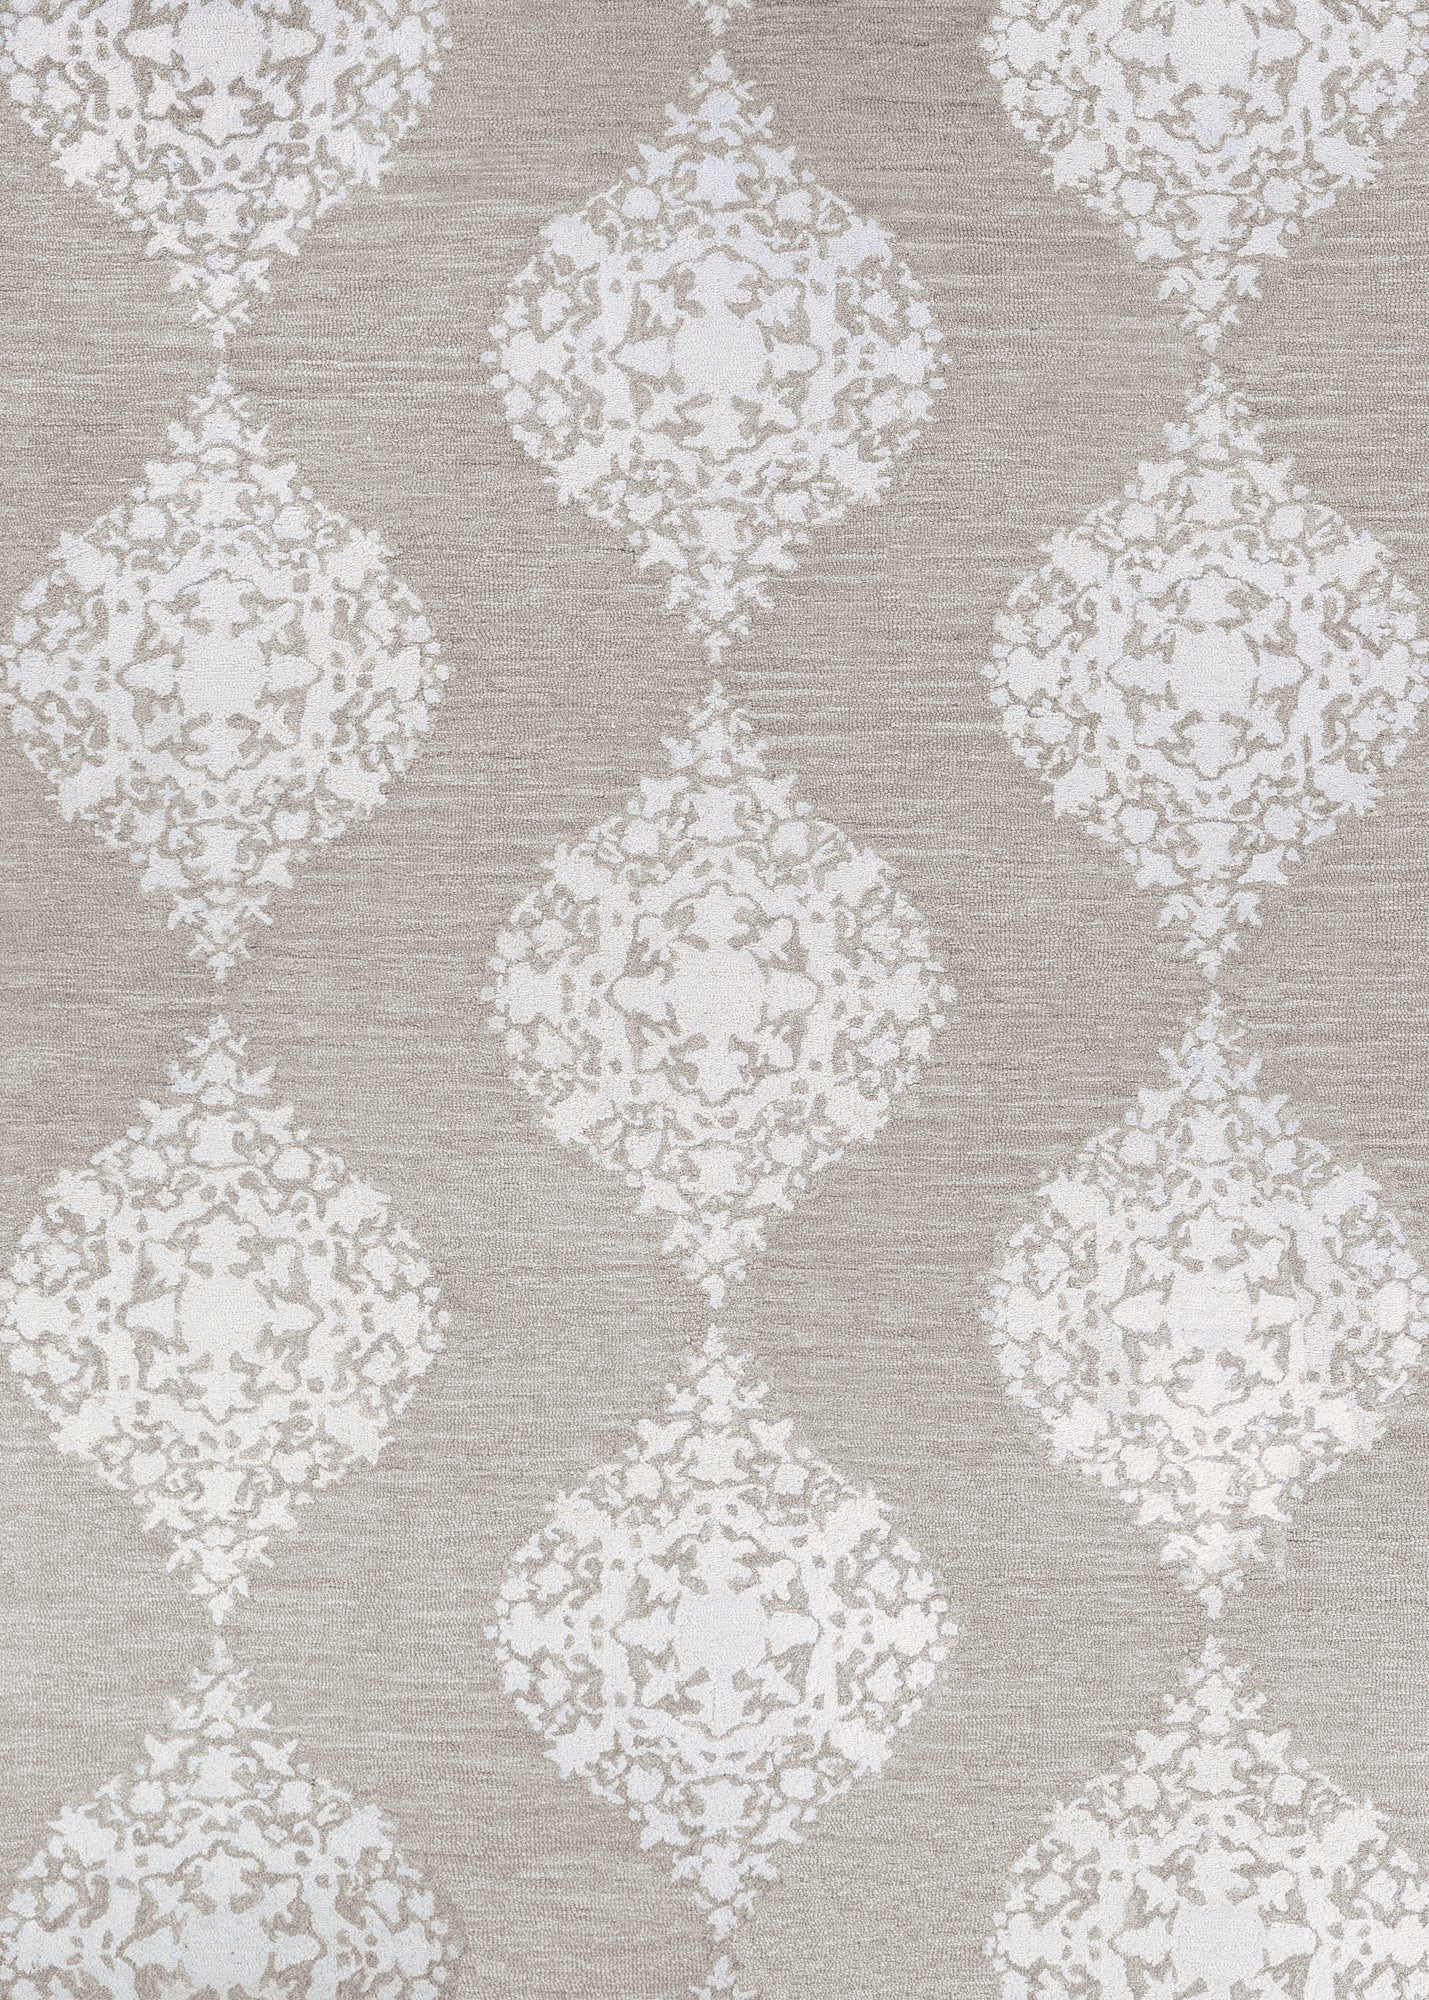 Couristan Crawford Ornament Natural/Ivory Area Rug main image